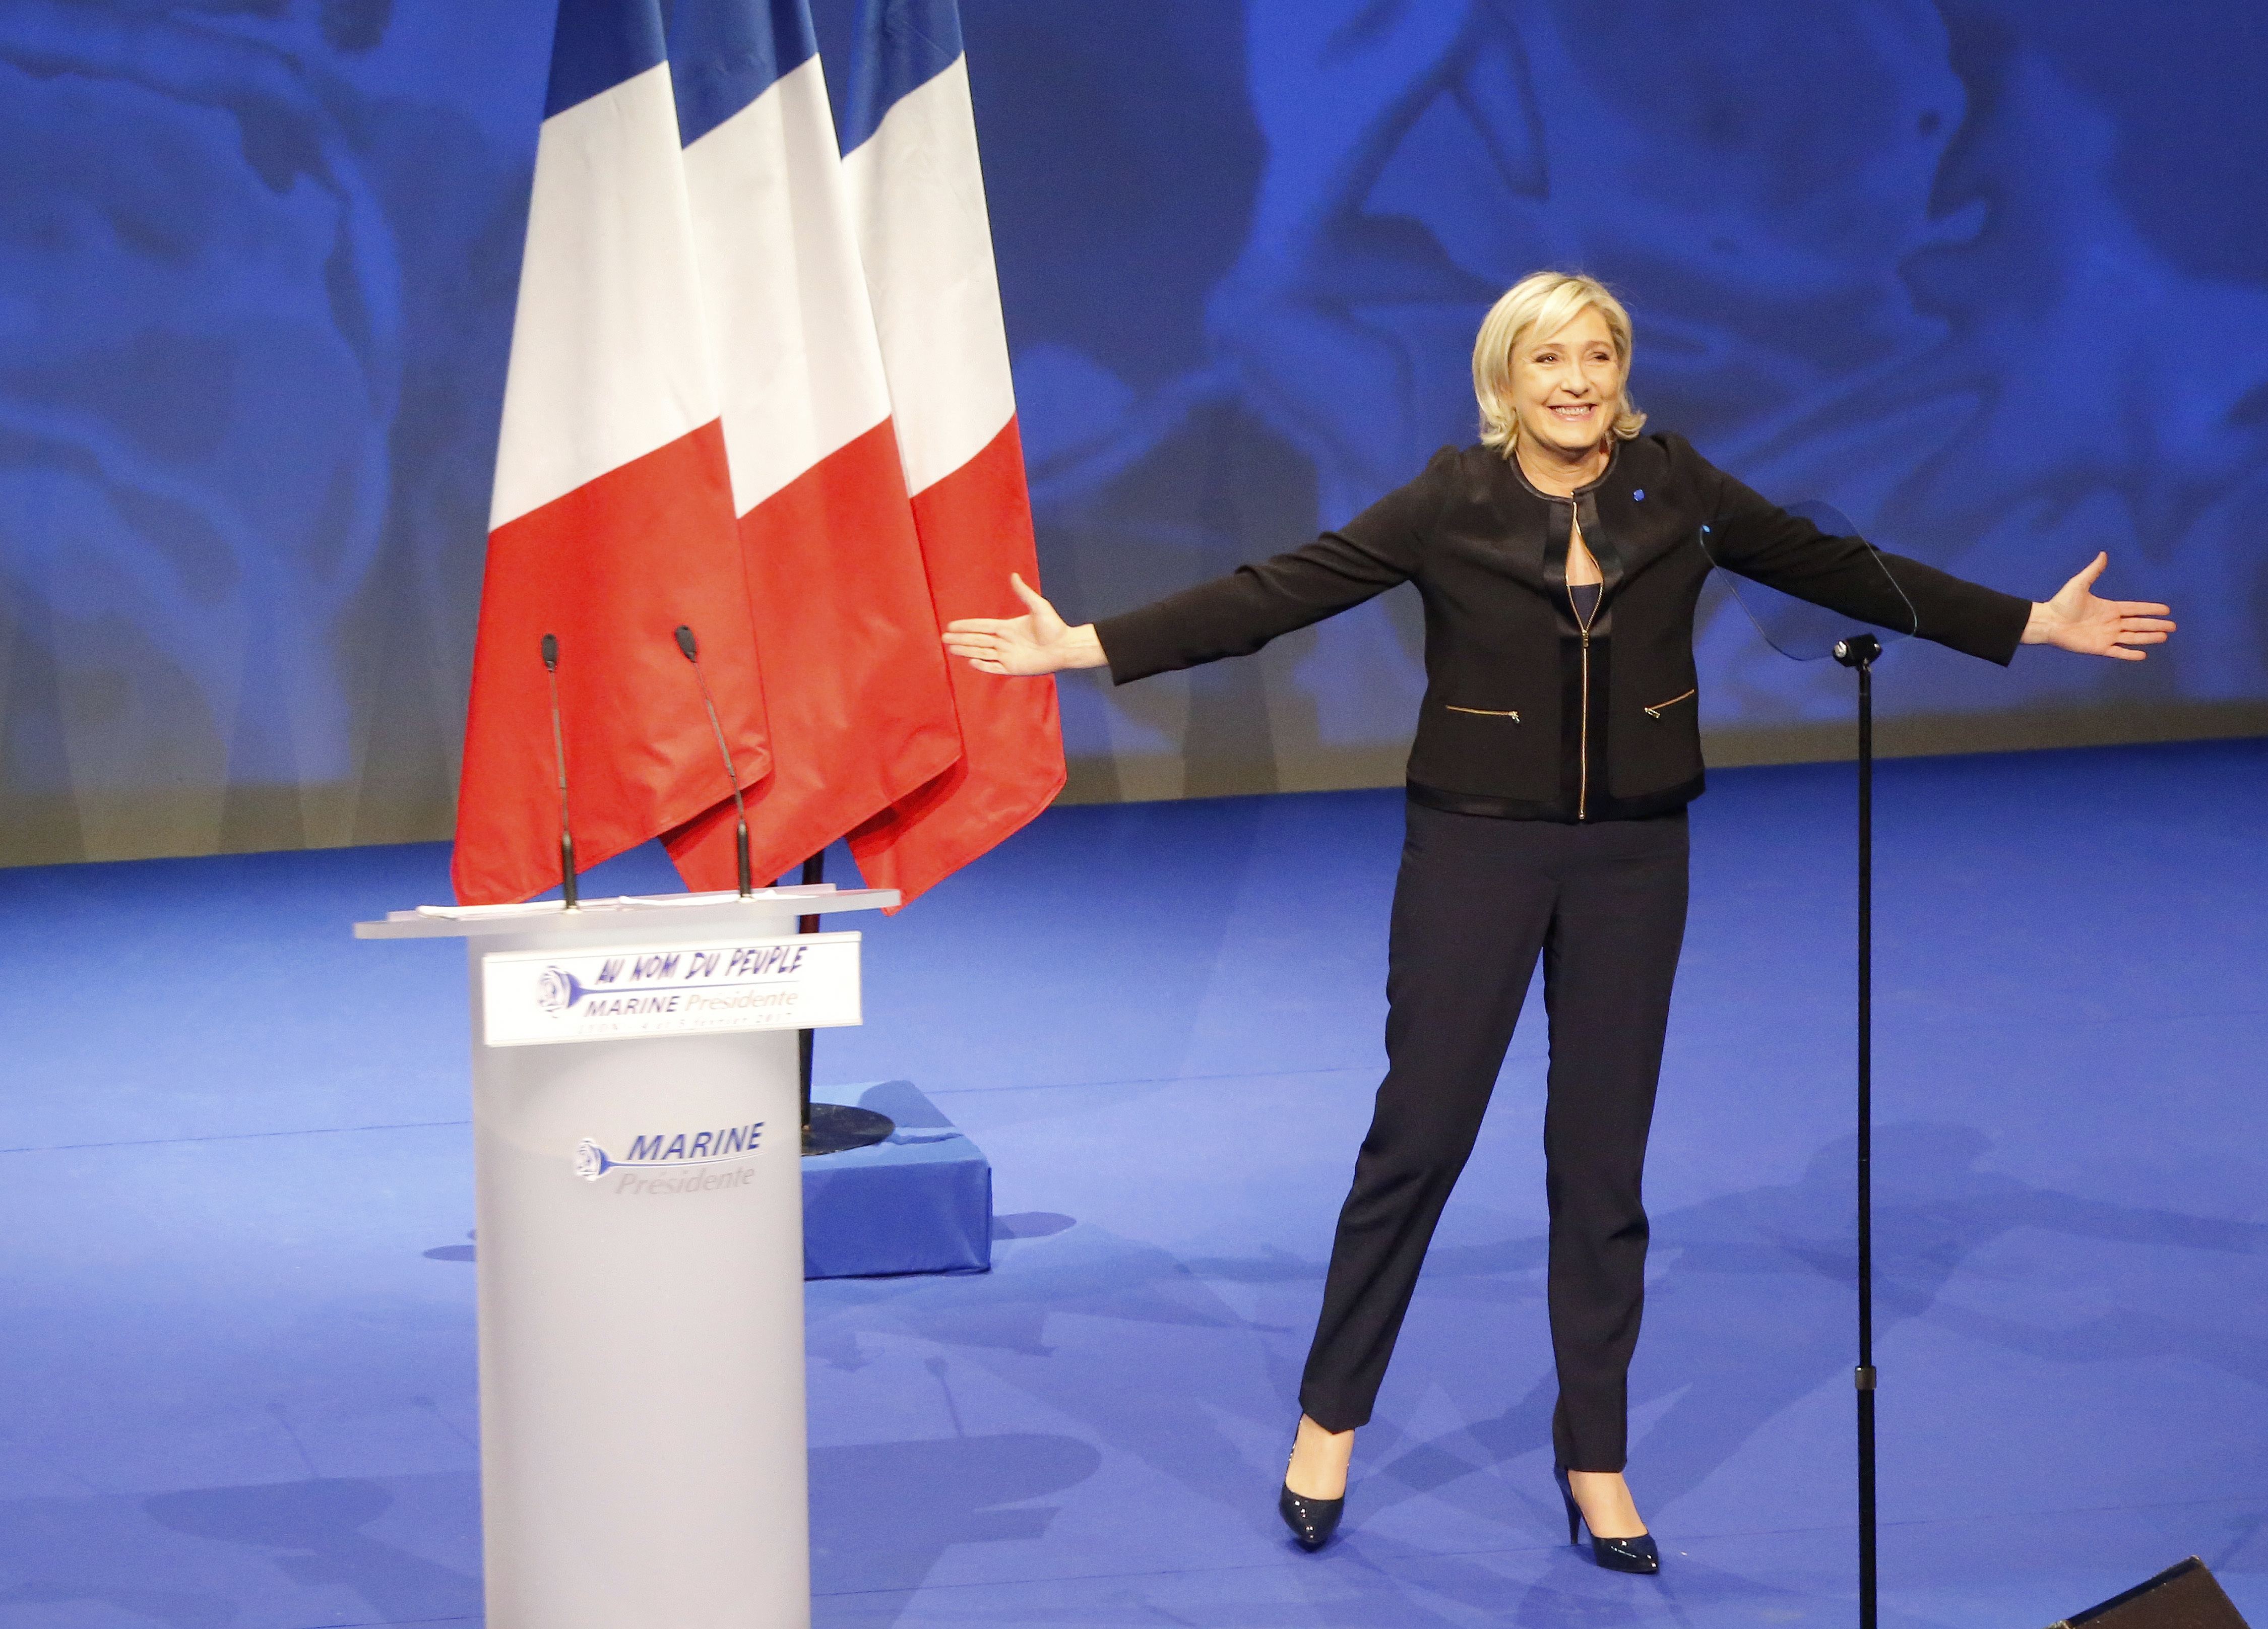 Conservative leader presidential candidate Marine Le Pen acknowledges applauses as she arrives as to a conference in Lyon, France on Feb. 5, 2017. (AP Photo/Michel Euler)